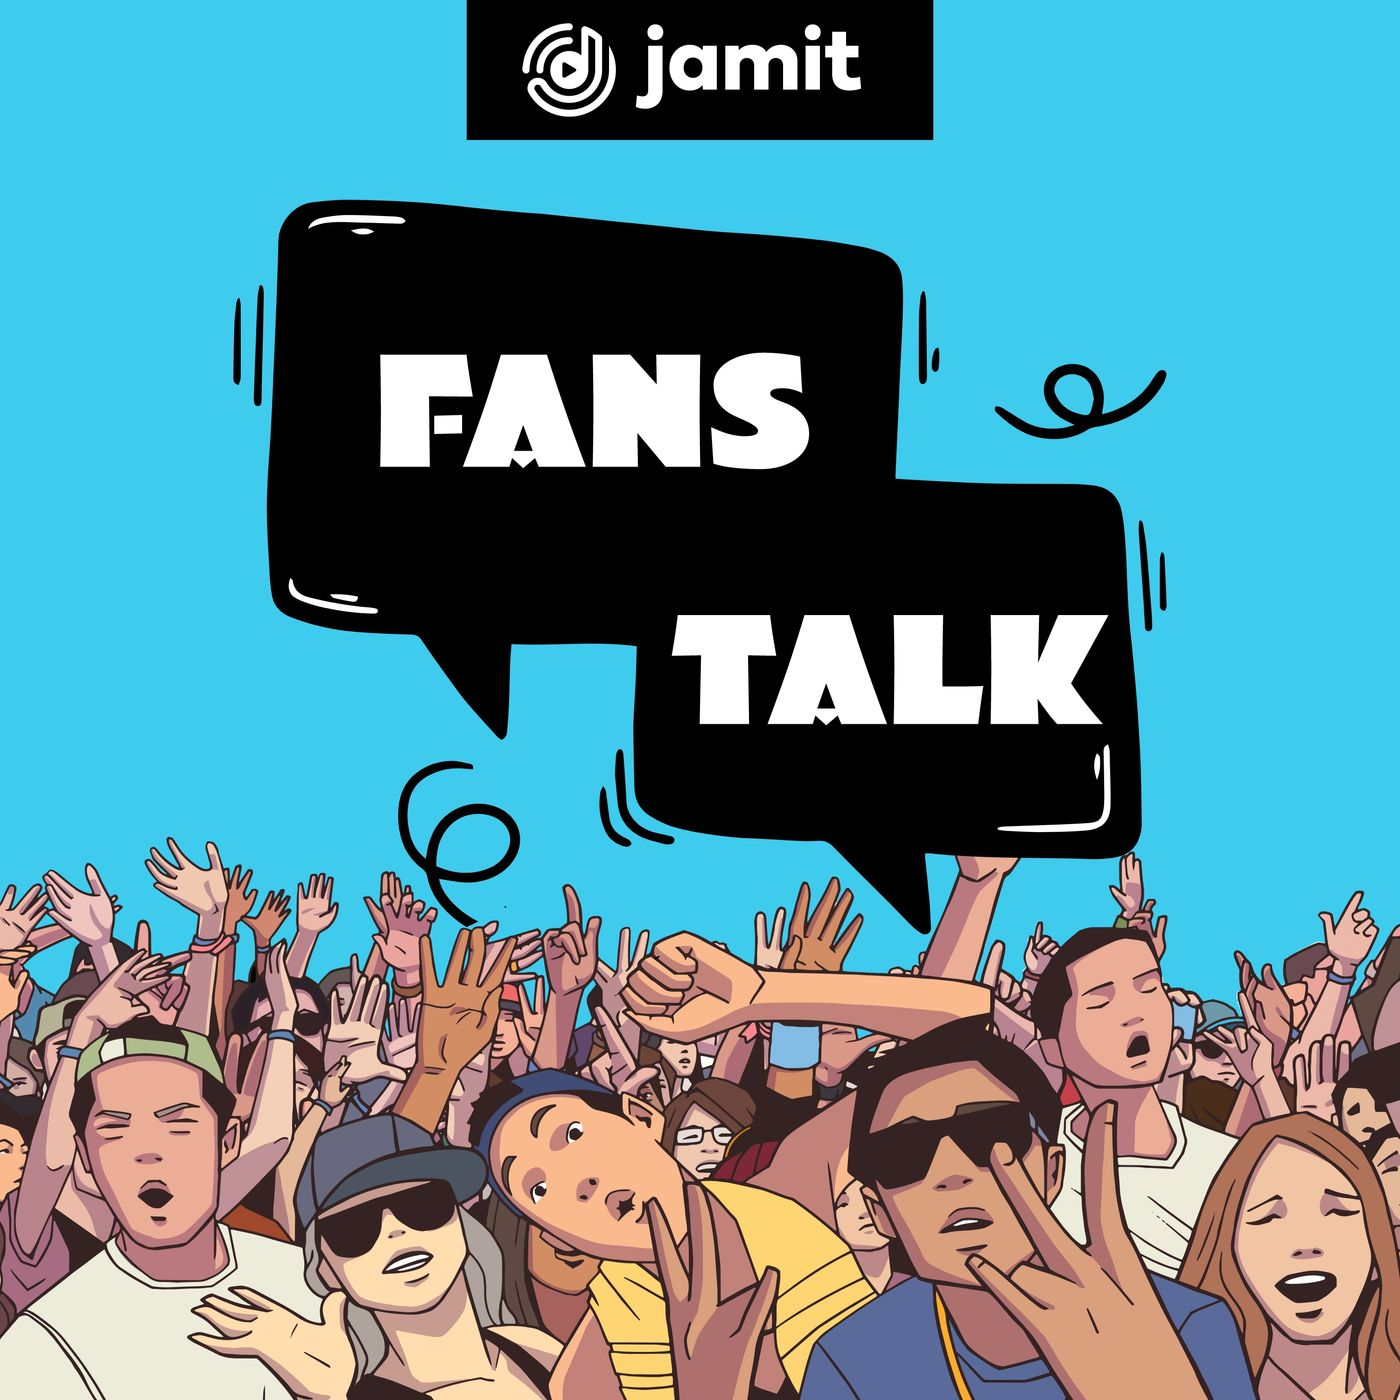 Fans Talk on Jamit